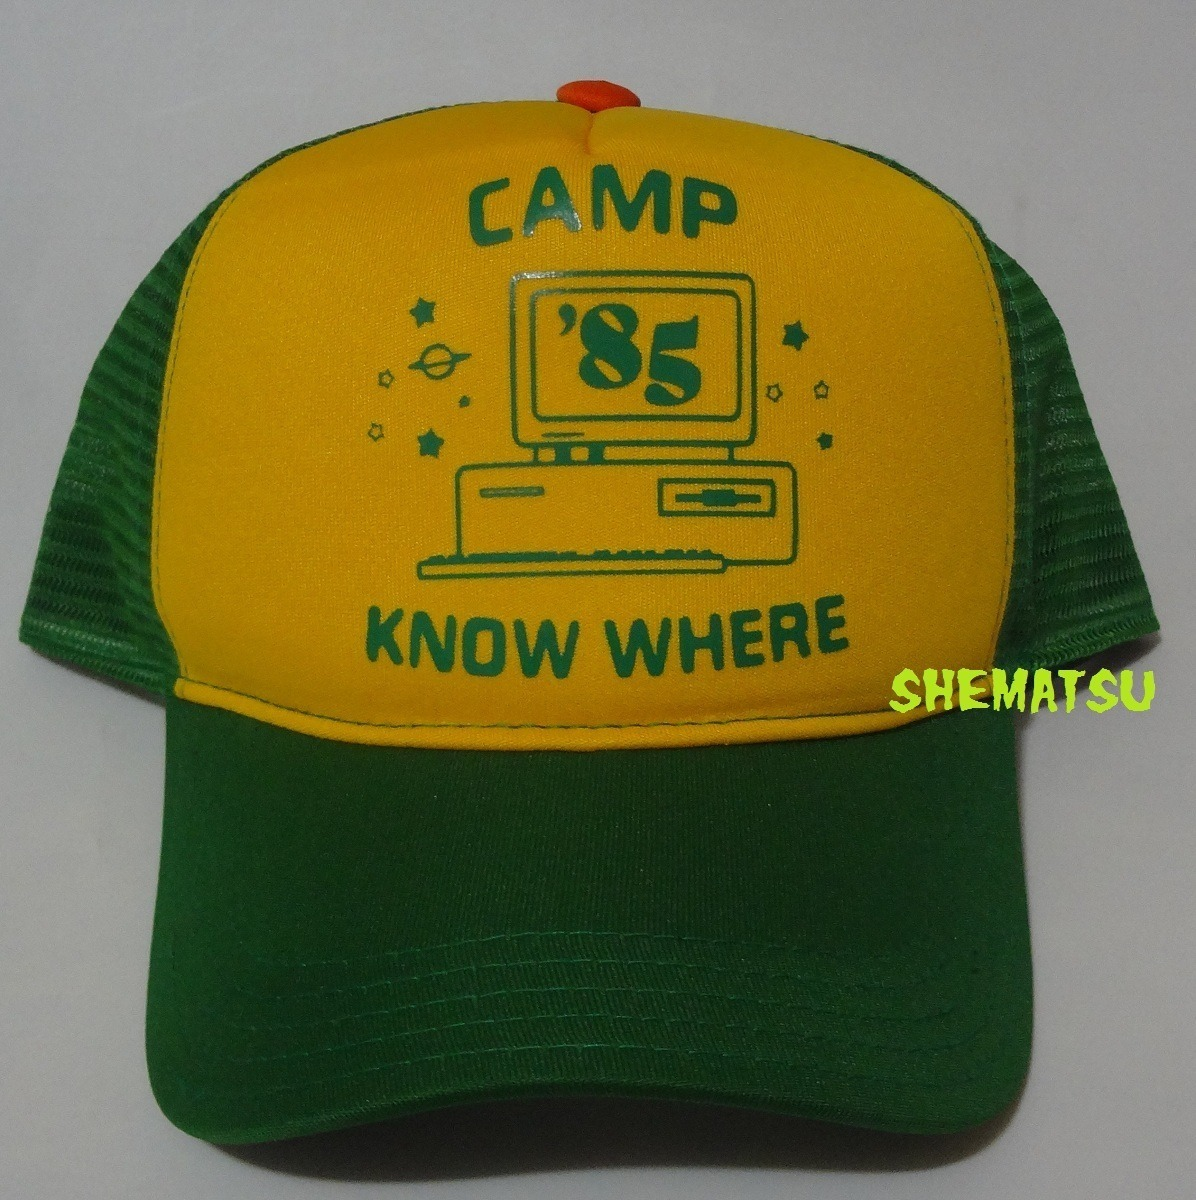 b8399ca4a63ad Boné Dustin Stranger Things 3 Camp Know Where Pronta Entrega - R$ 46 ...